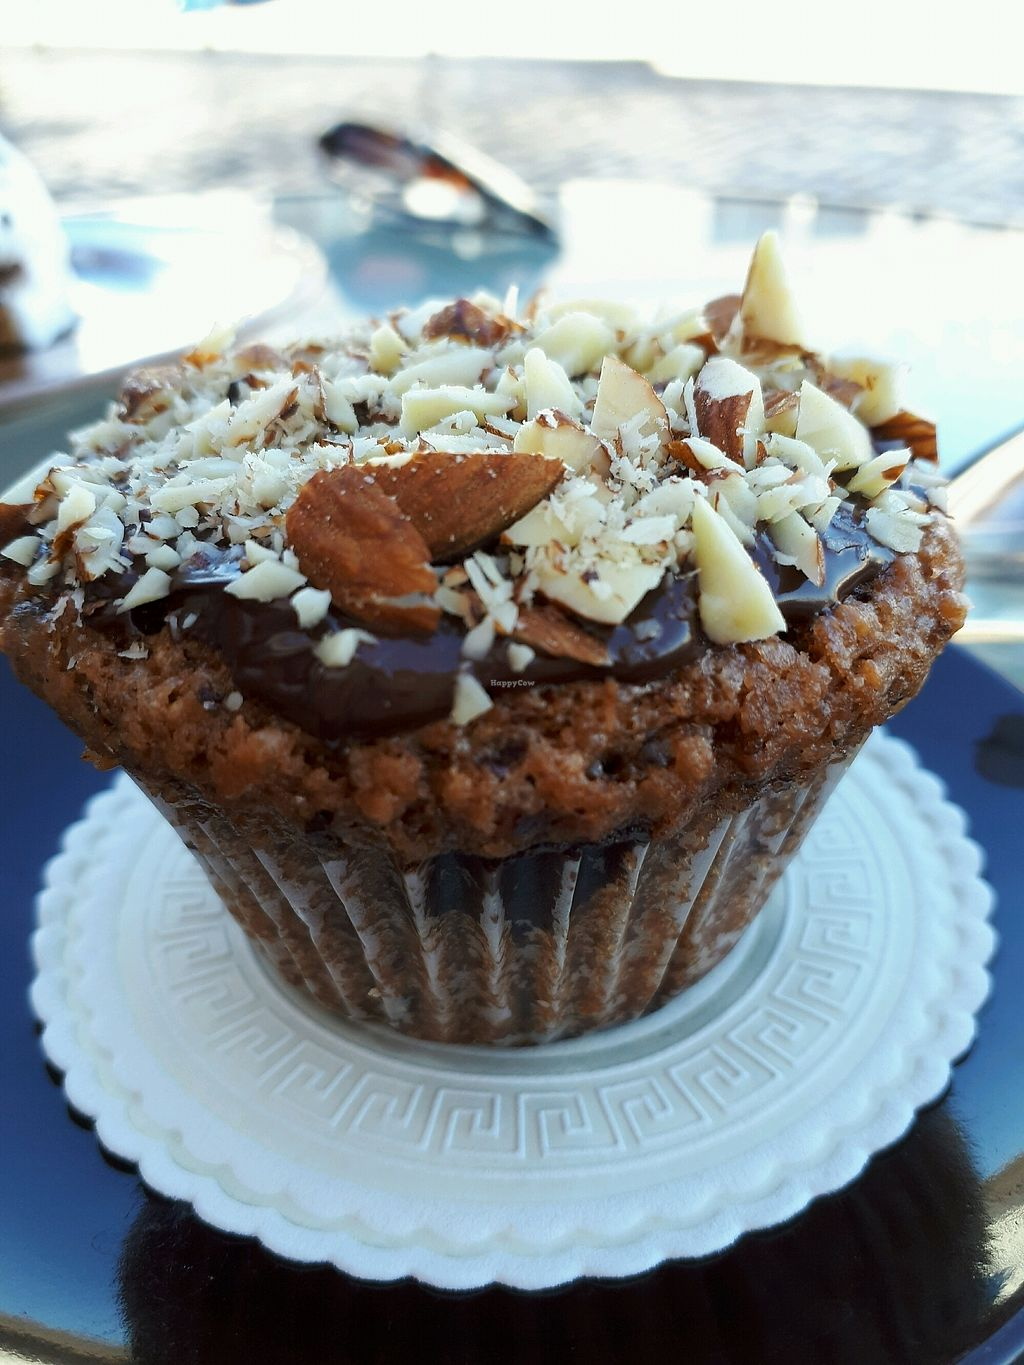 """Photo of Mandala  by <a href=""""/members/profile/KellyDean"""">KellyDean</a> <br/>almond chocolate muffin  <br/> October 6, 2017  - <a href='/contact/abuse/image/80570/312290'>Report</a>"""